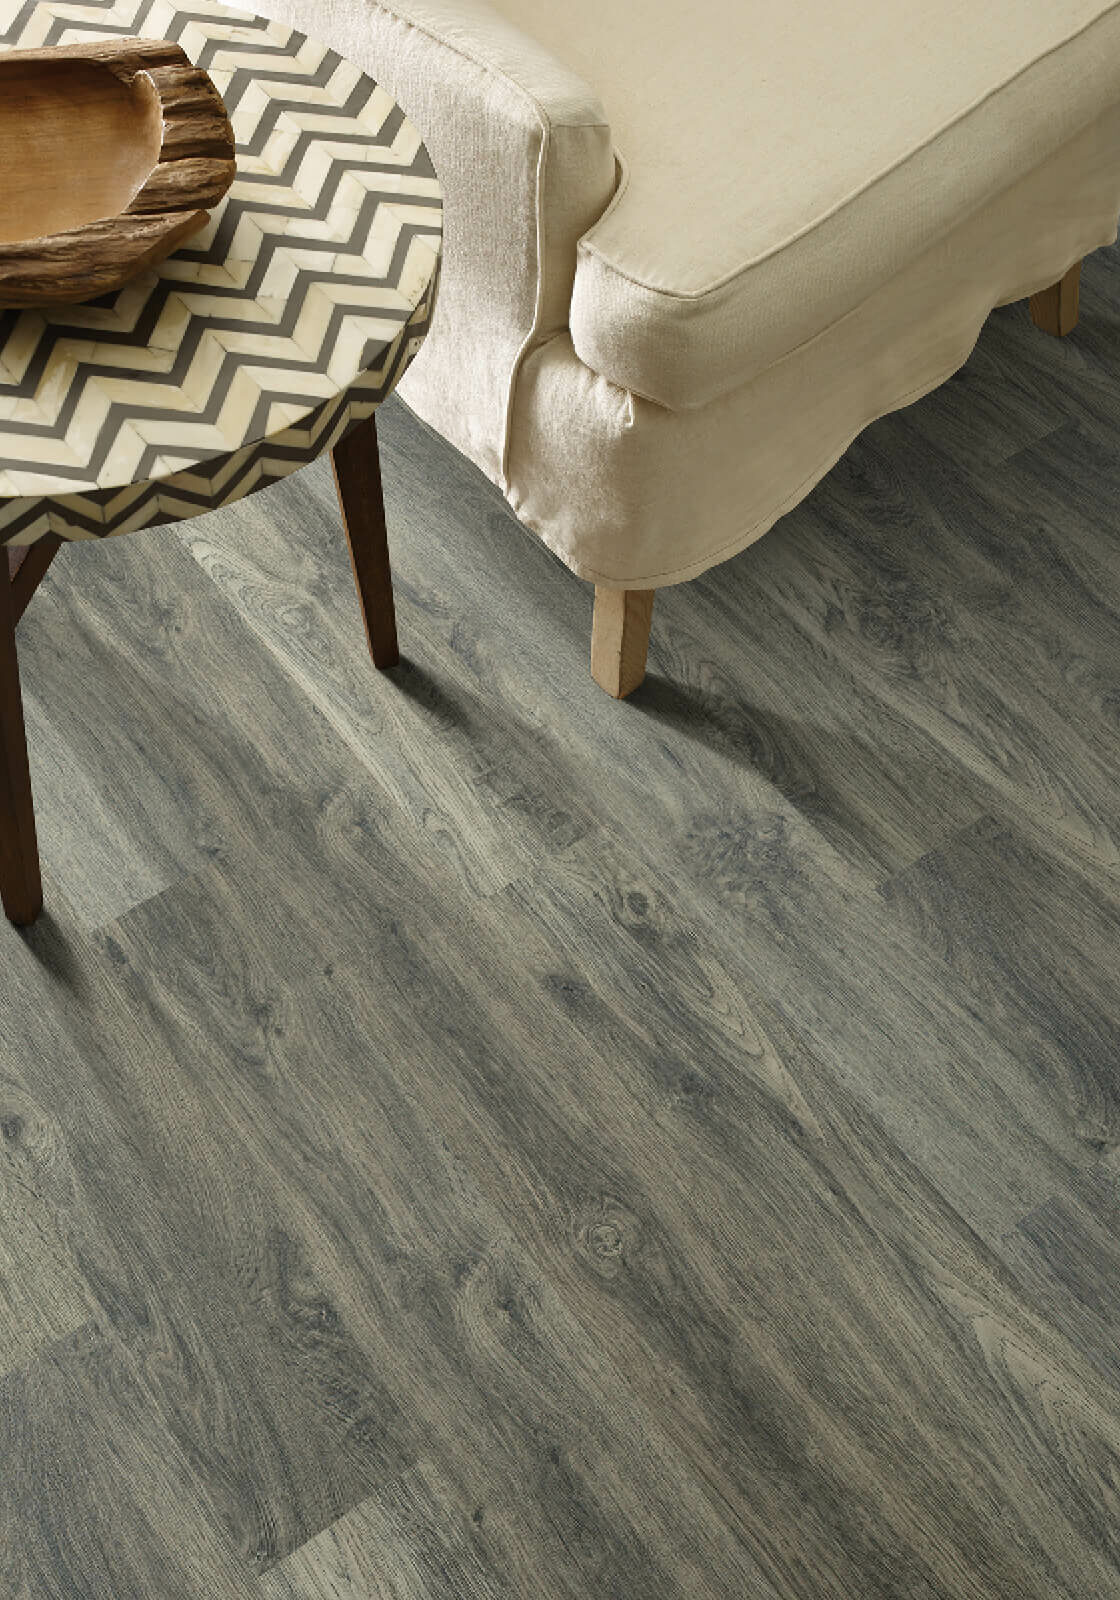 Gold coast laminate flooring | The Flooring Place